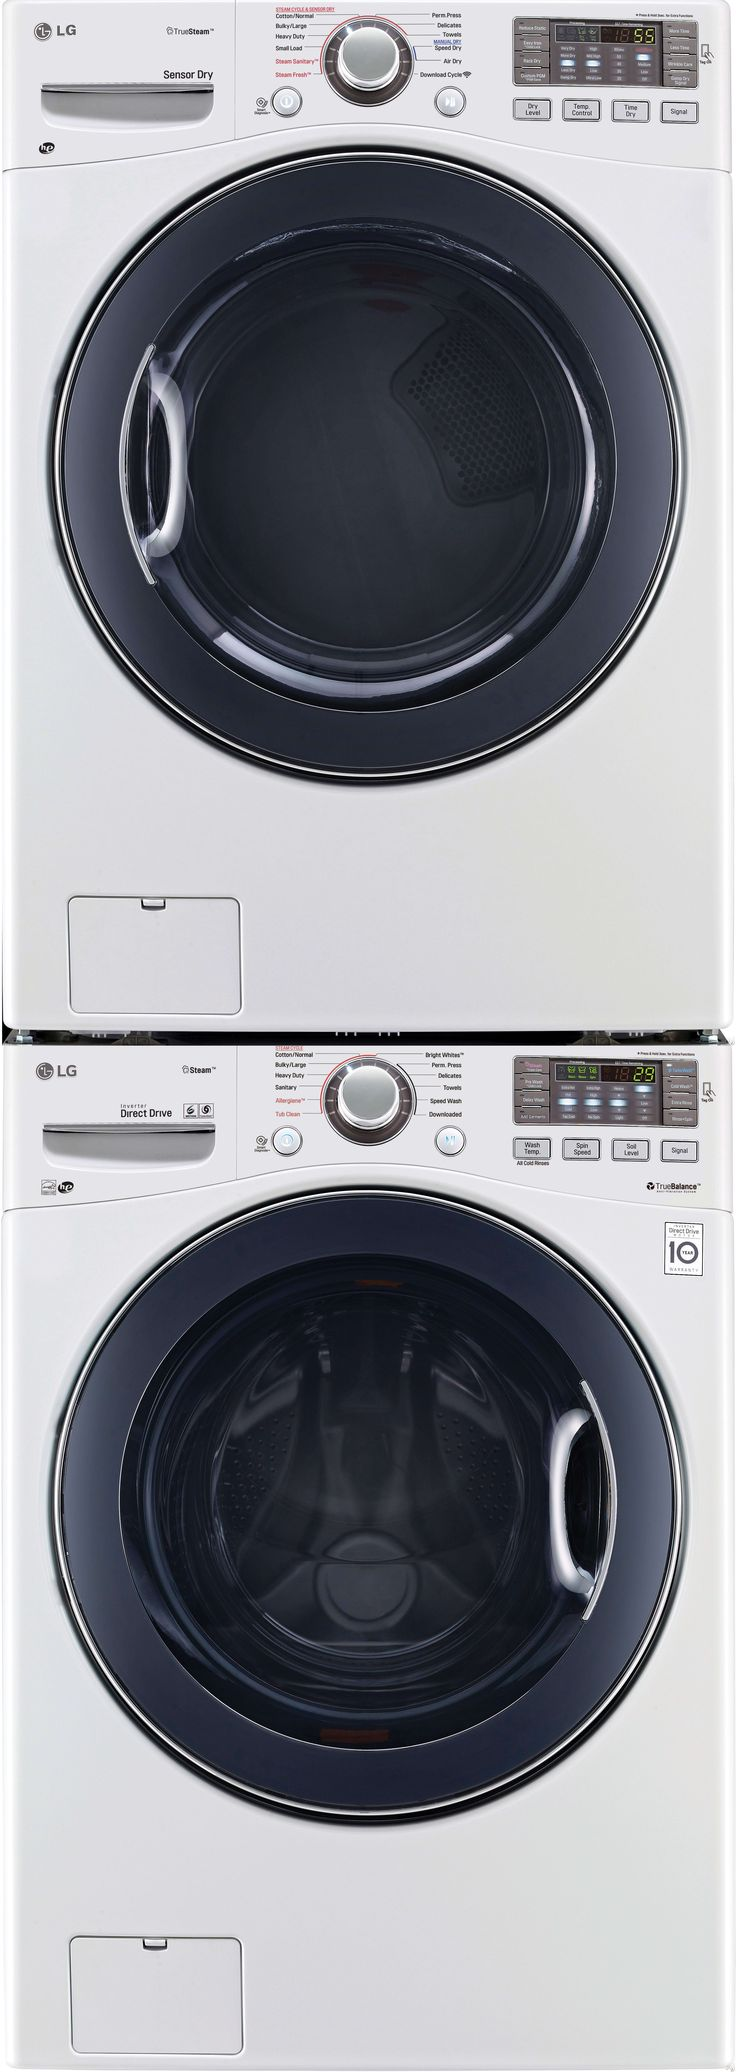 LG LGWADREW95 Stacked Washer & Dryer Set with Front Load Washer and Electric Dryer in White